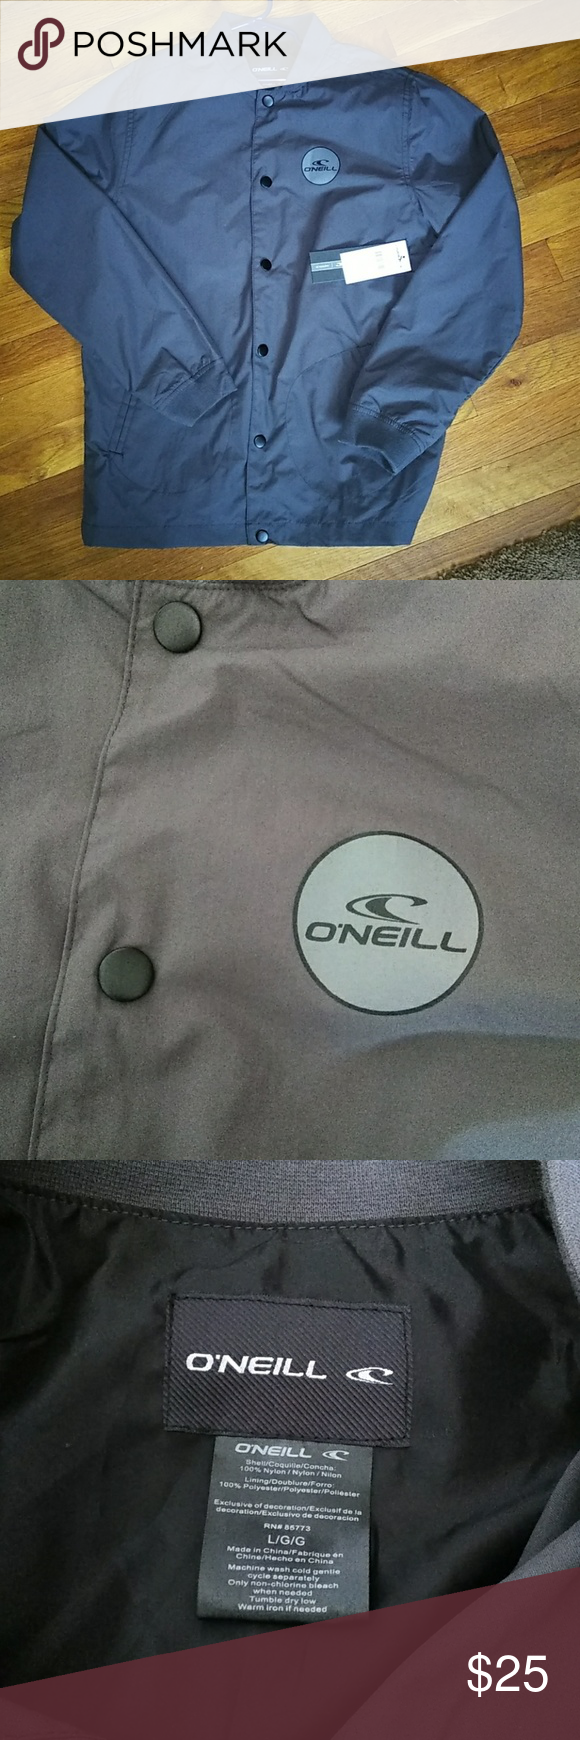 Nwt O Neill Windbreaker Rain Jacket Yl Nwt O Neill Roster Franchise Jacket Lightweight Perfect For Rainy And Windy Fall An Jackets Rain Jacket Clothes Design